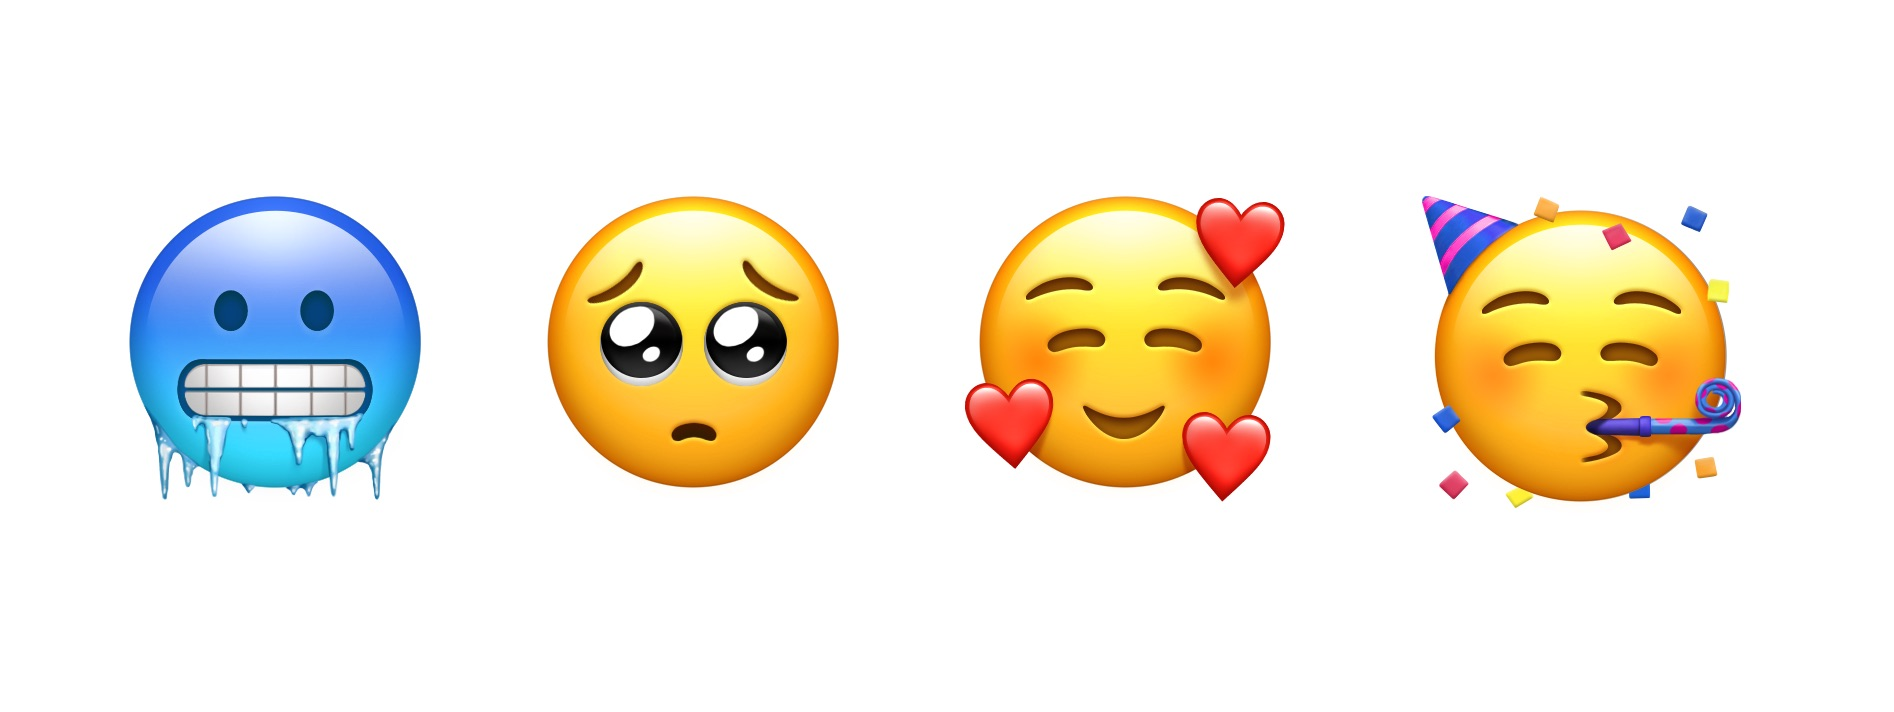 apple-new-emoji-smileys-emojipedia-2018